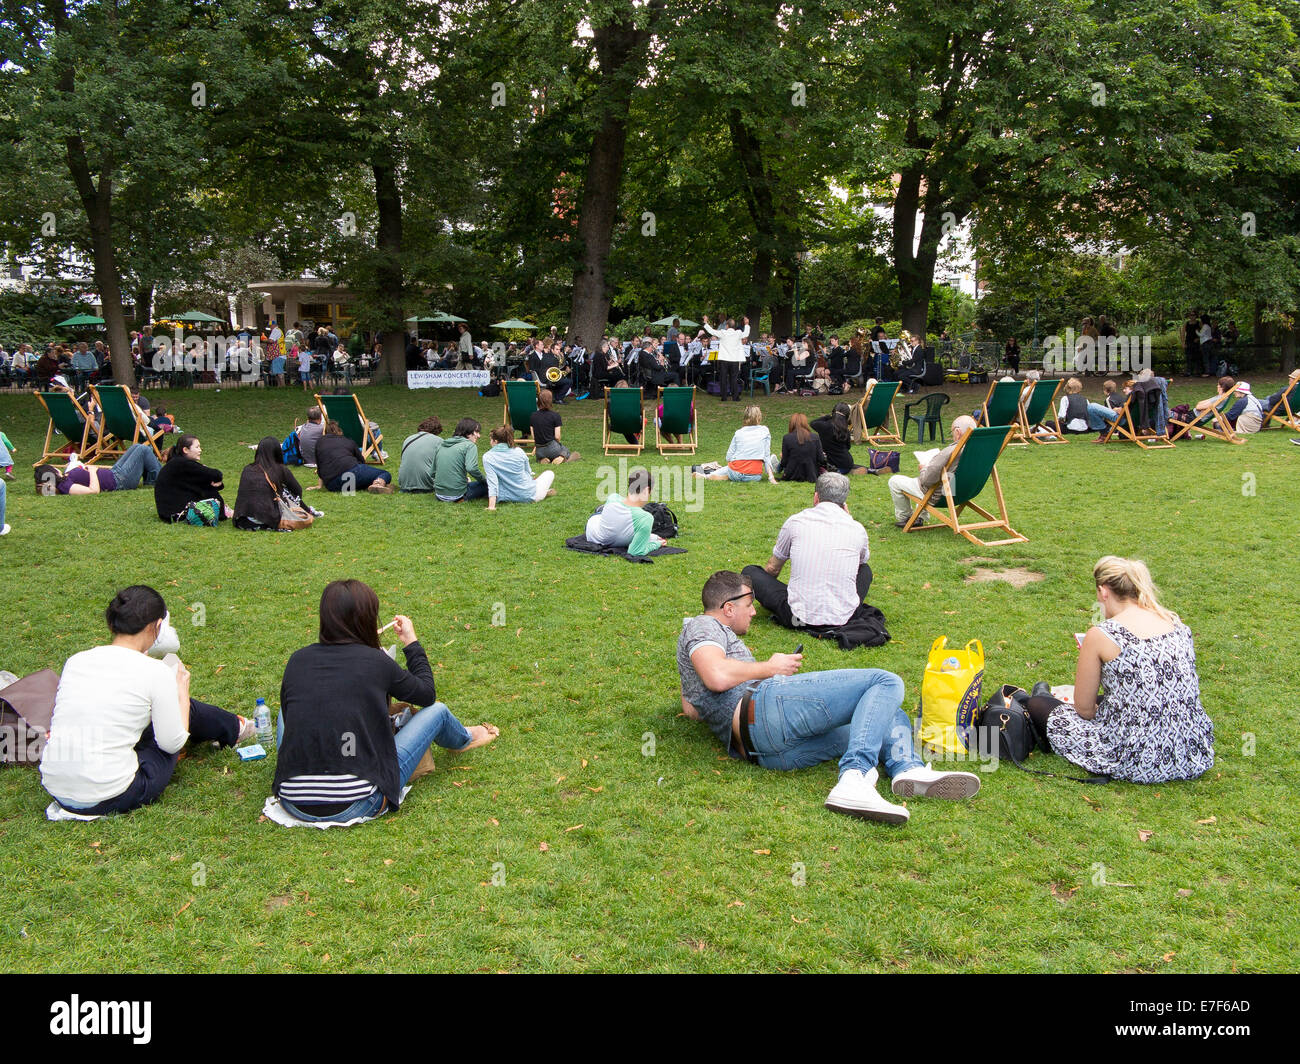 31 Aug 2014, Brighton: The Lewisham Concert Band playing in the Royal Pavilion Gardens. - Stock Image